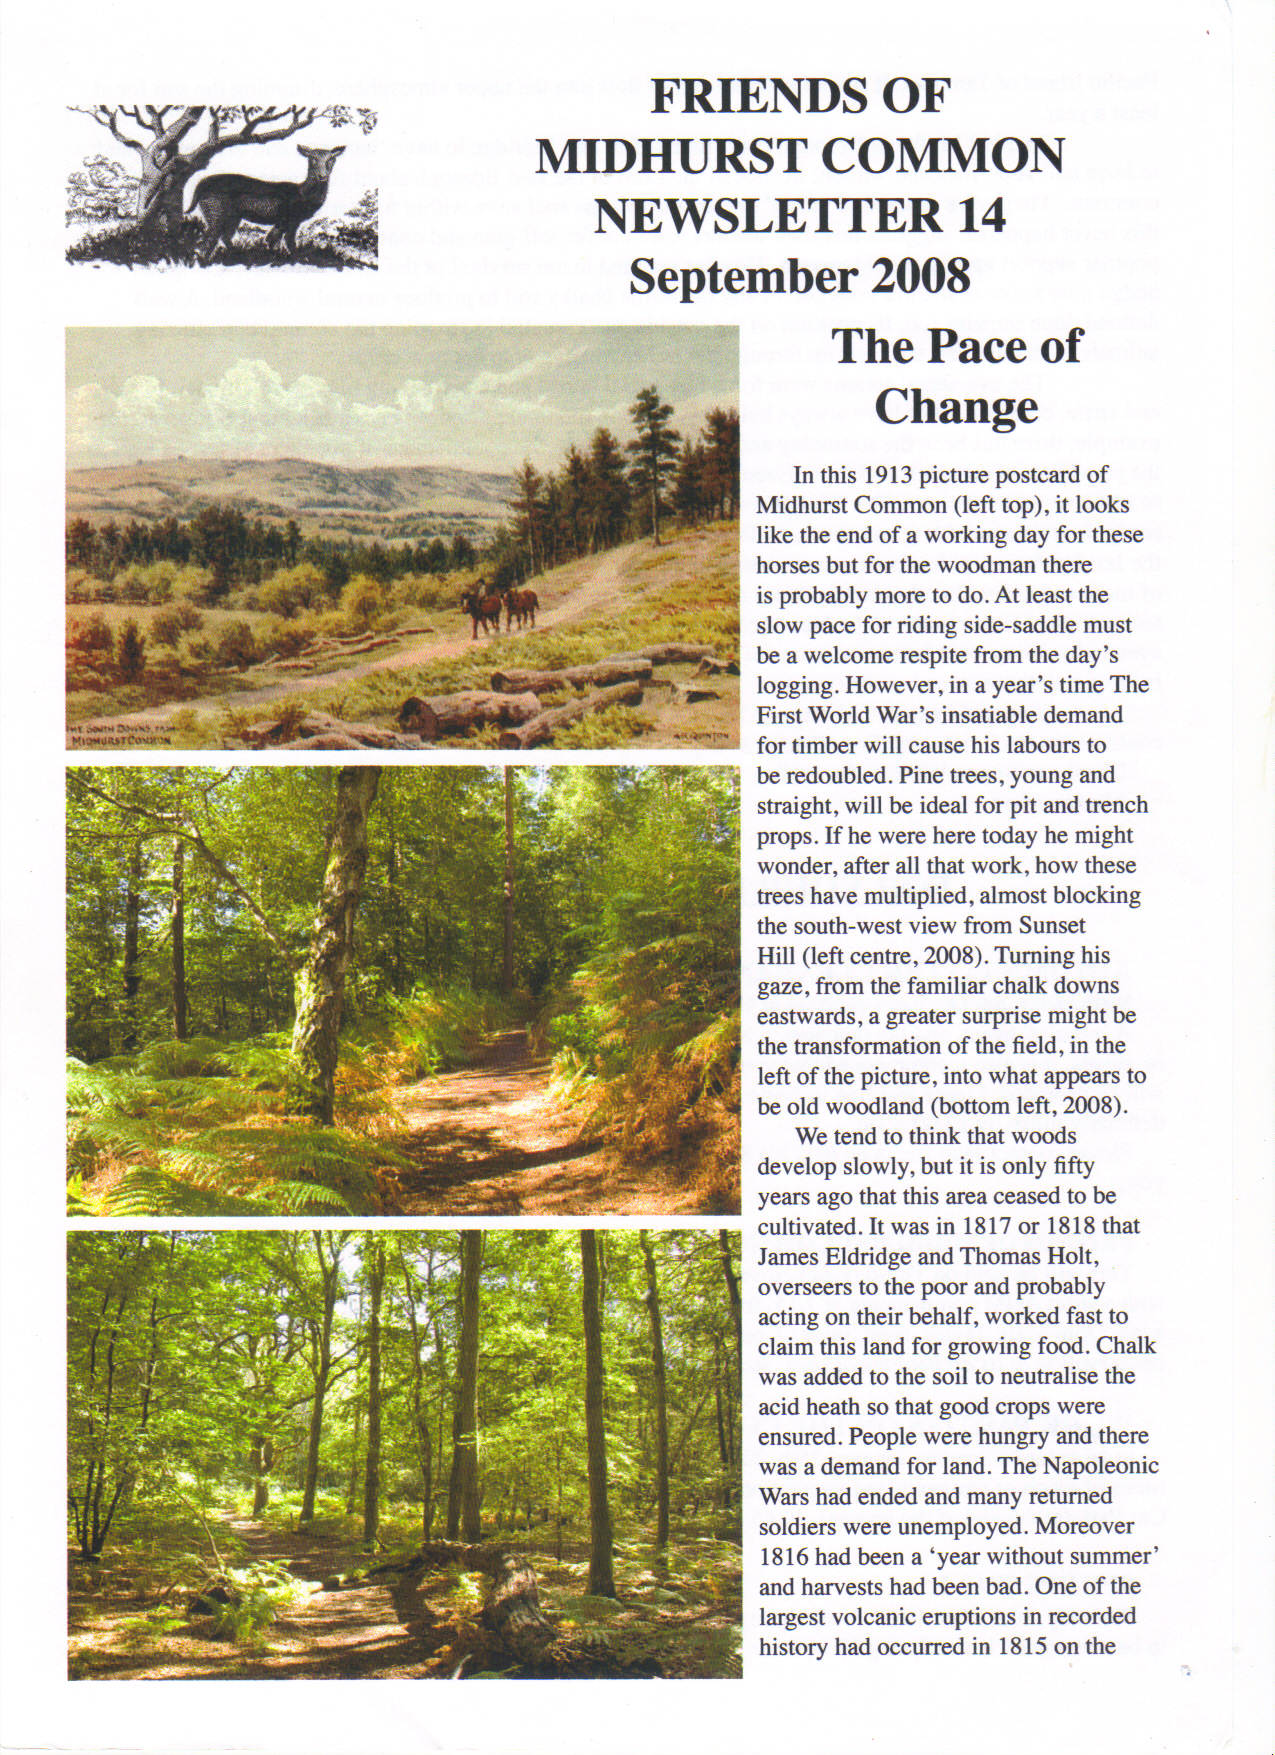 The pace of change - Newsletter no 14 part 1 of 2 September 2008